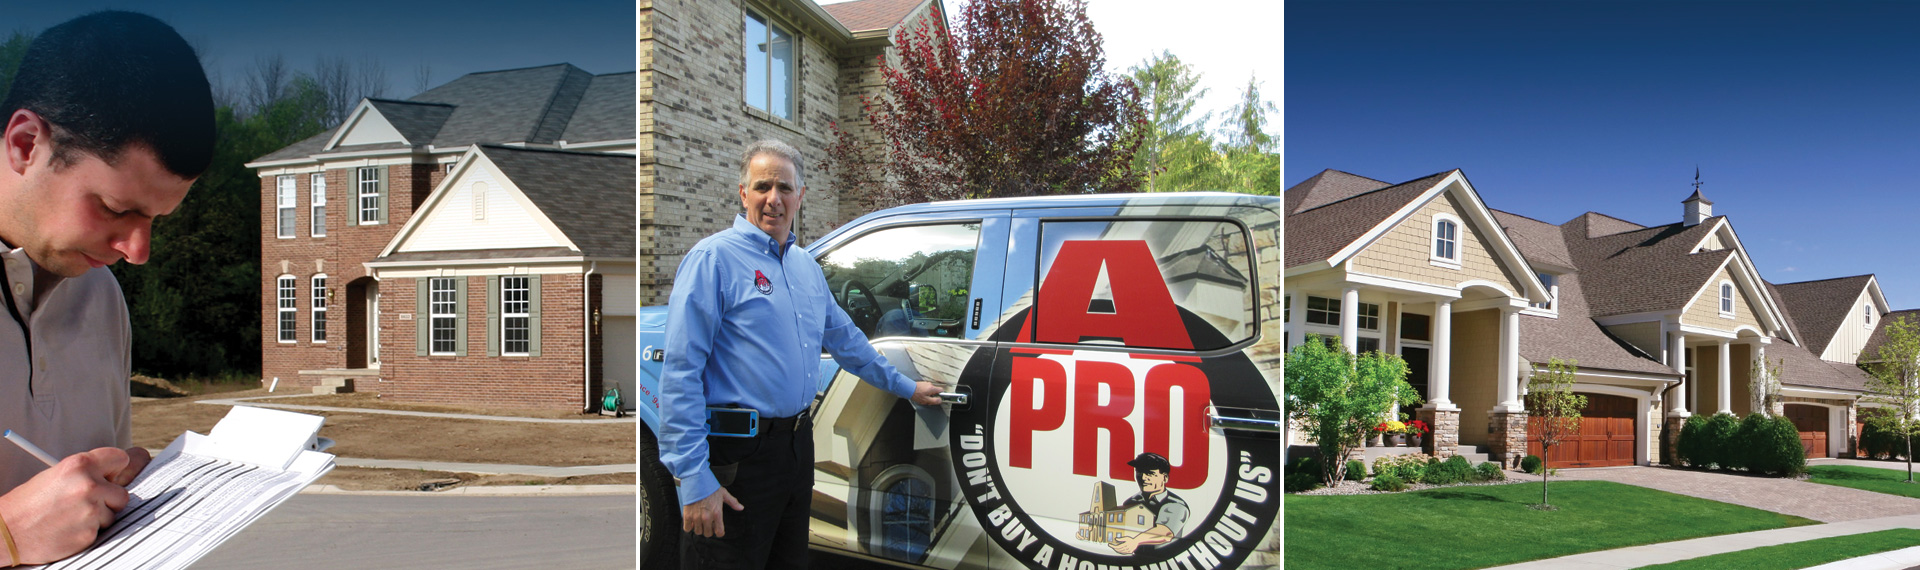 A-Pro Southwest Ohio Home Inspection Loveland OH